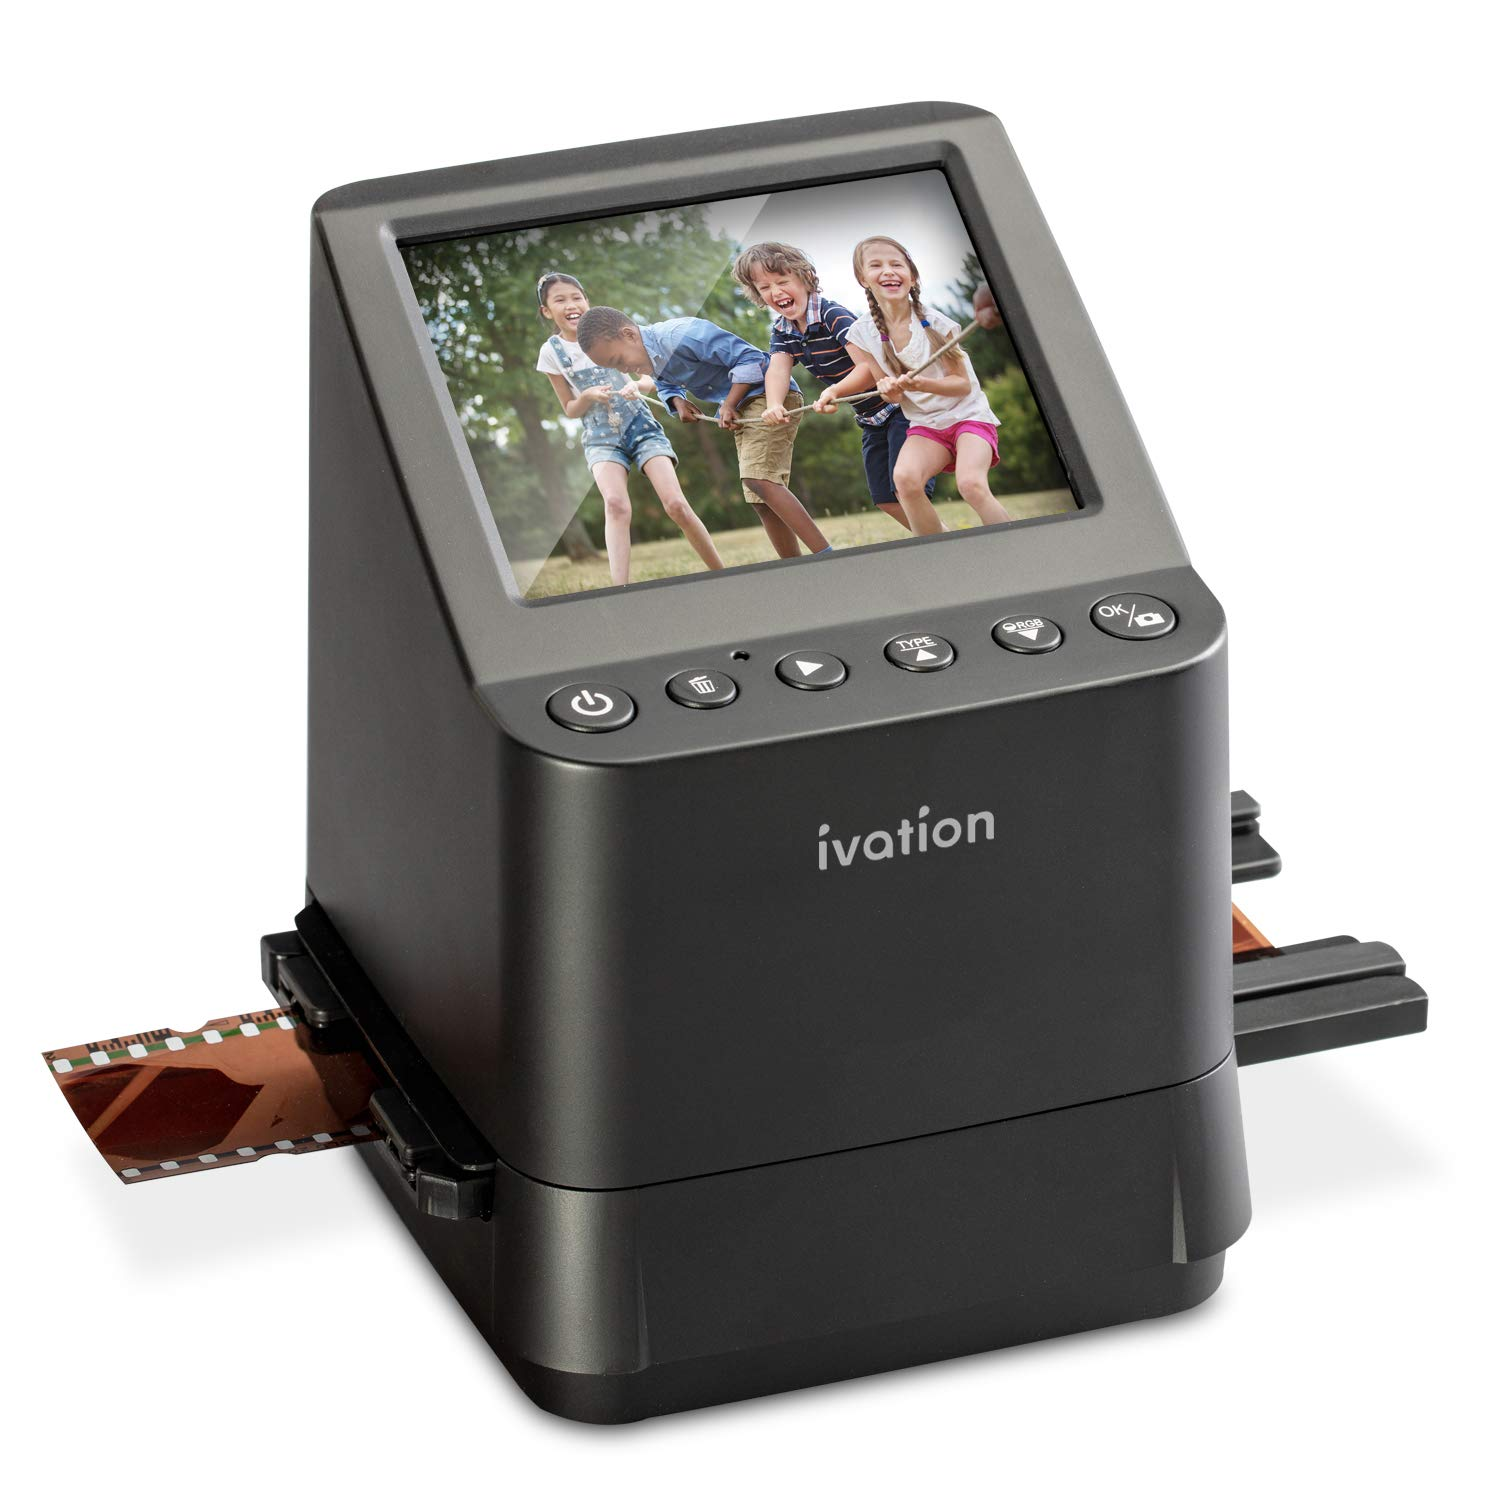 Ivation High Resolution 23MP Film Scanner Converts 135, 110, 126, Black and White, Films Slides and Negatives into Digital Photos, Vibrant 3.5'' 3.5'' Color LCD Display, Easy Quick Load Film Inserts by Ivation